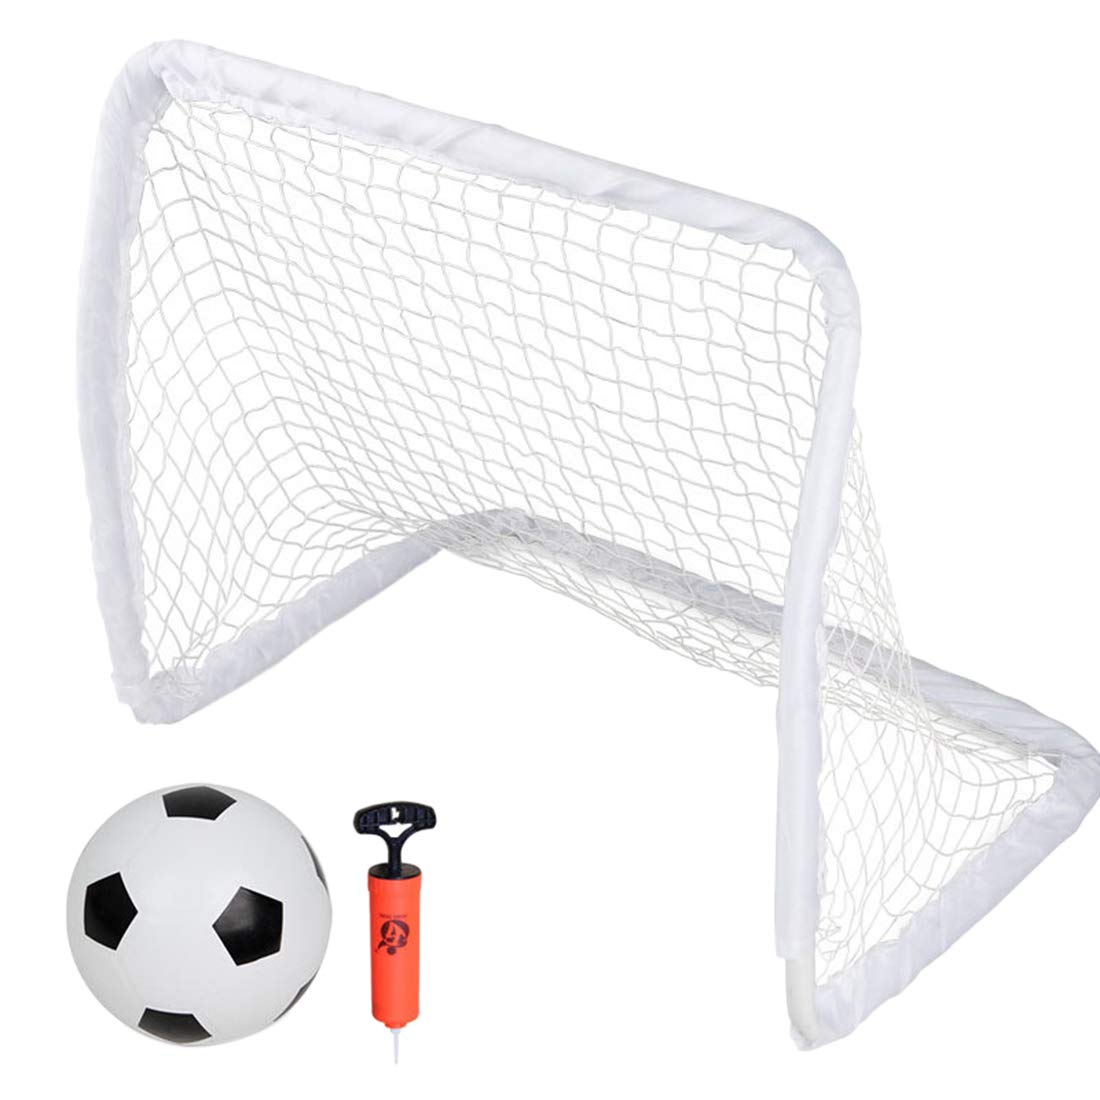 Yamix Kids Soccer Goal with Ball & Pump - Portable Soccer Goal and Net - Indoor or Outdoor Soccer Goal for Kids - 24.4'' x 21.7'' x 14.9'' by Yamix